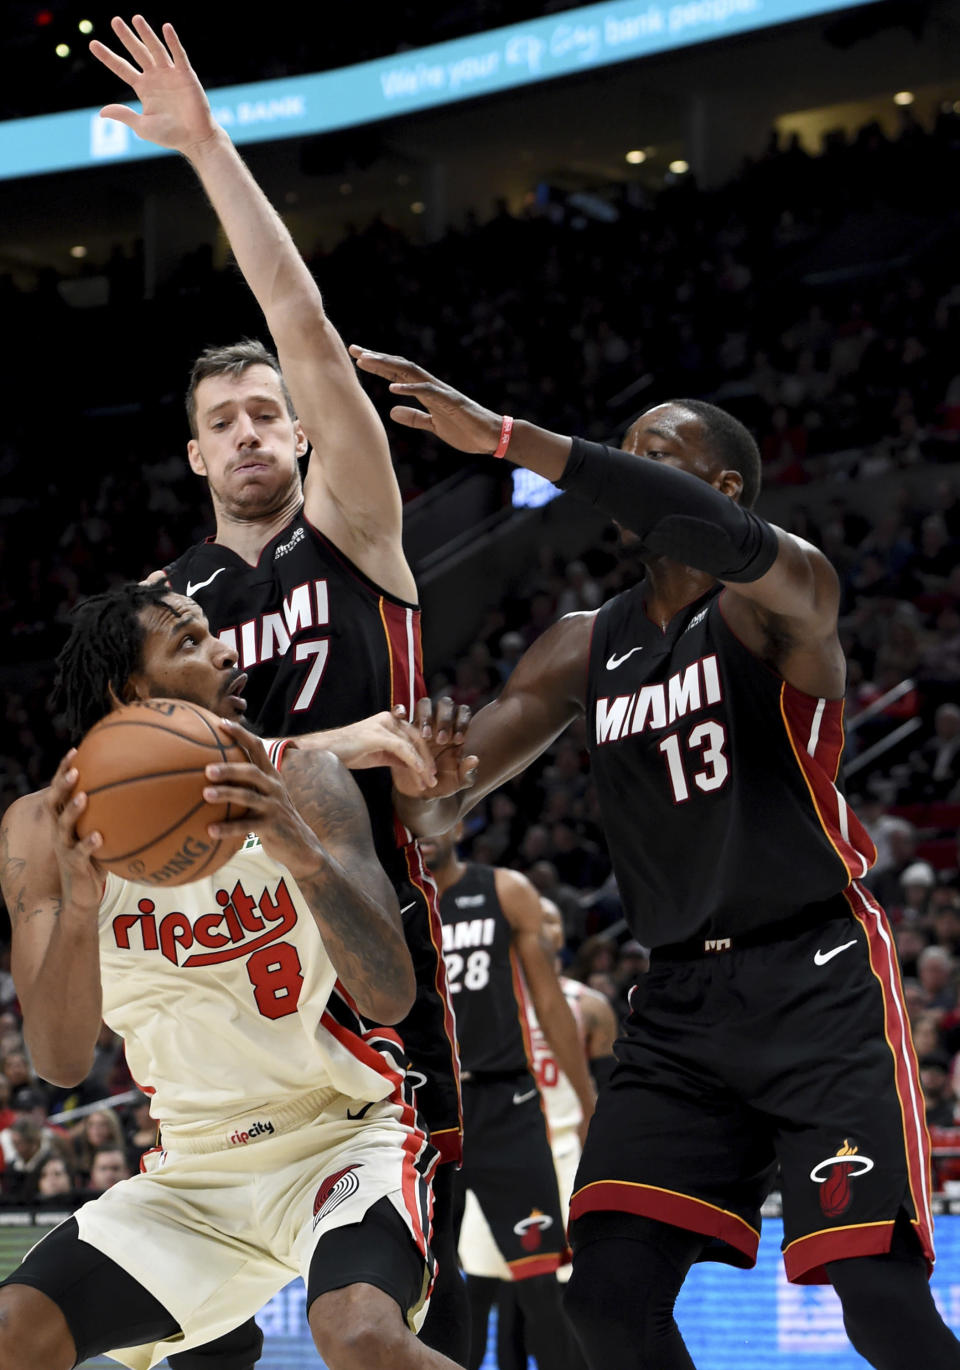 FILE - Portland Trail Blazers forward Trevor Ariza, left, tries to go up for a shot on Miami Heat guard Goran Dragic, center, and forward Bam Adebayo, right, during the second half of an NBA basketball game in Portland, Ore., in this Sunday, Feb. 9, 2020, file photo. Ariza has had interest in playing for the Miami Heat since a draft workout in 2004. He was traded to Miami this week and now gets that long-awaited chance. (AP Photo/Steve Dykes, File)